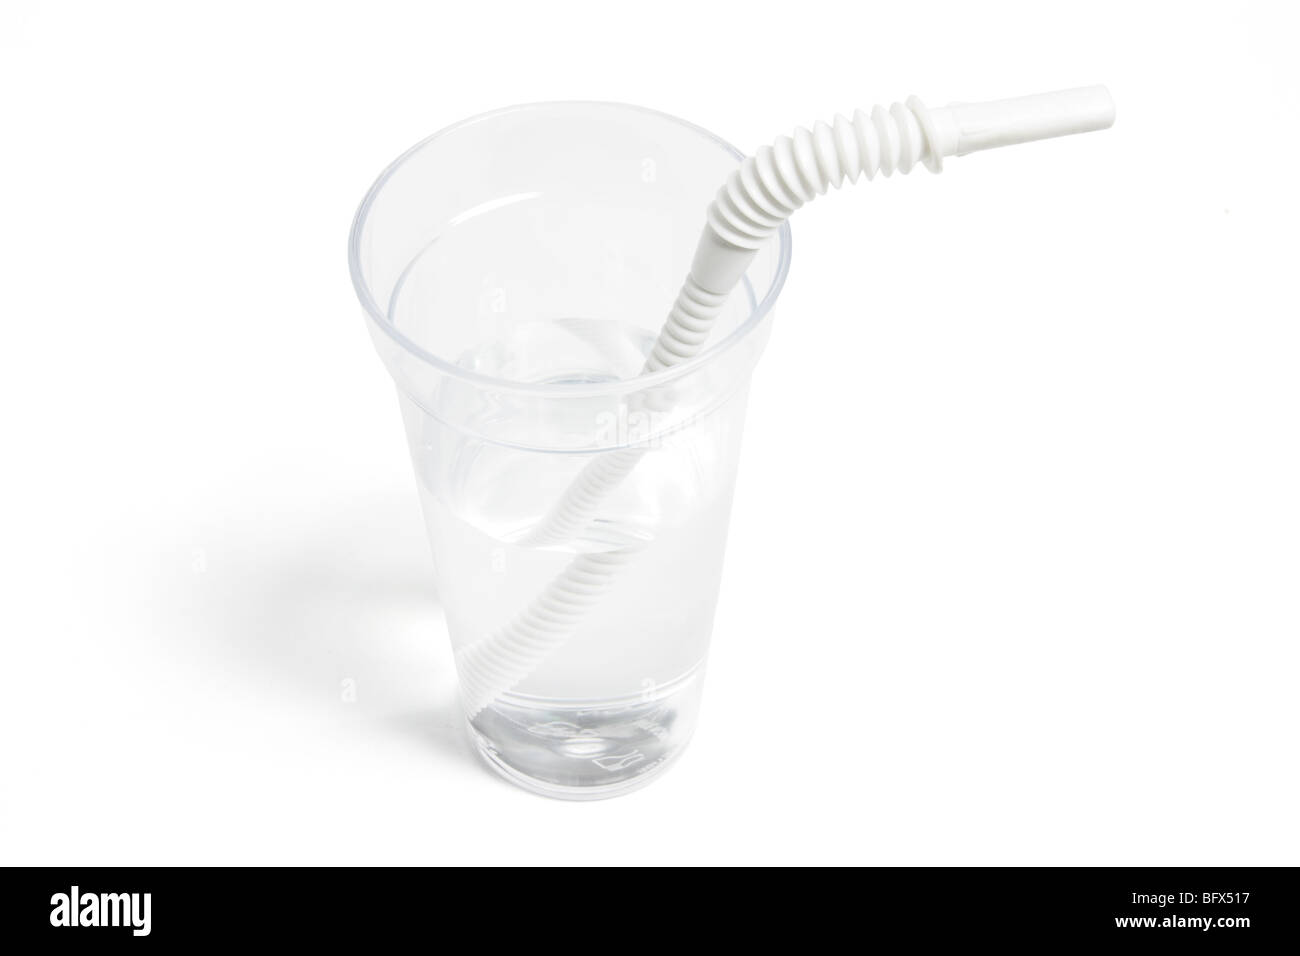 Water in Plastic Cup - Stock Image